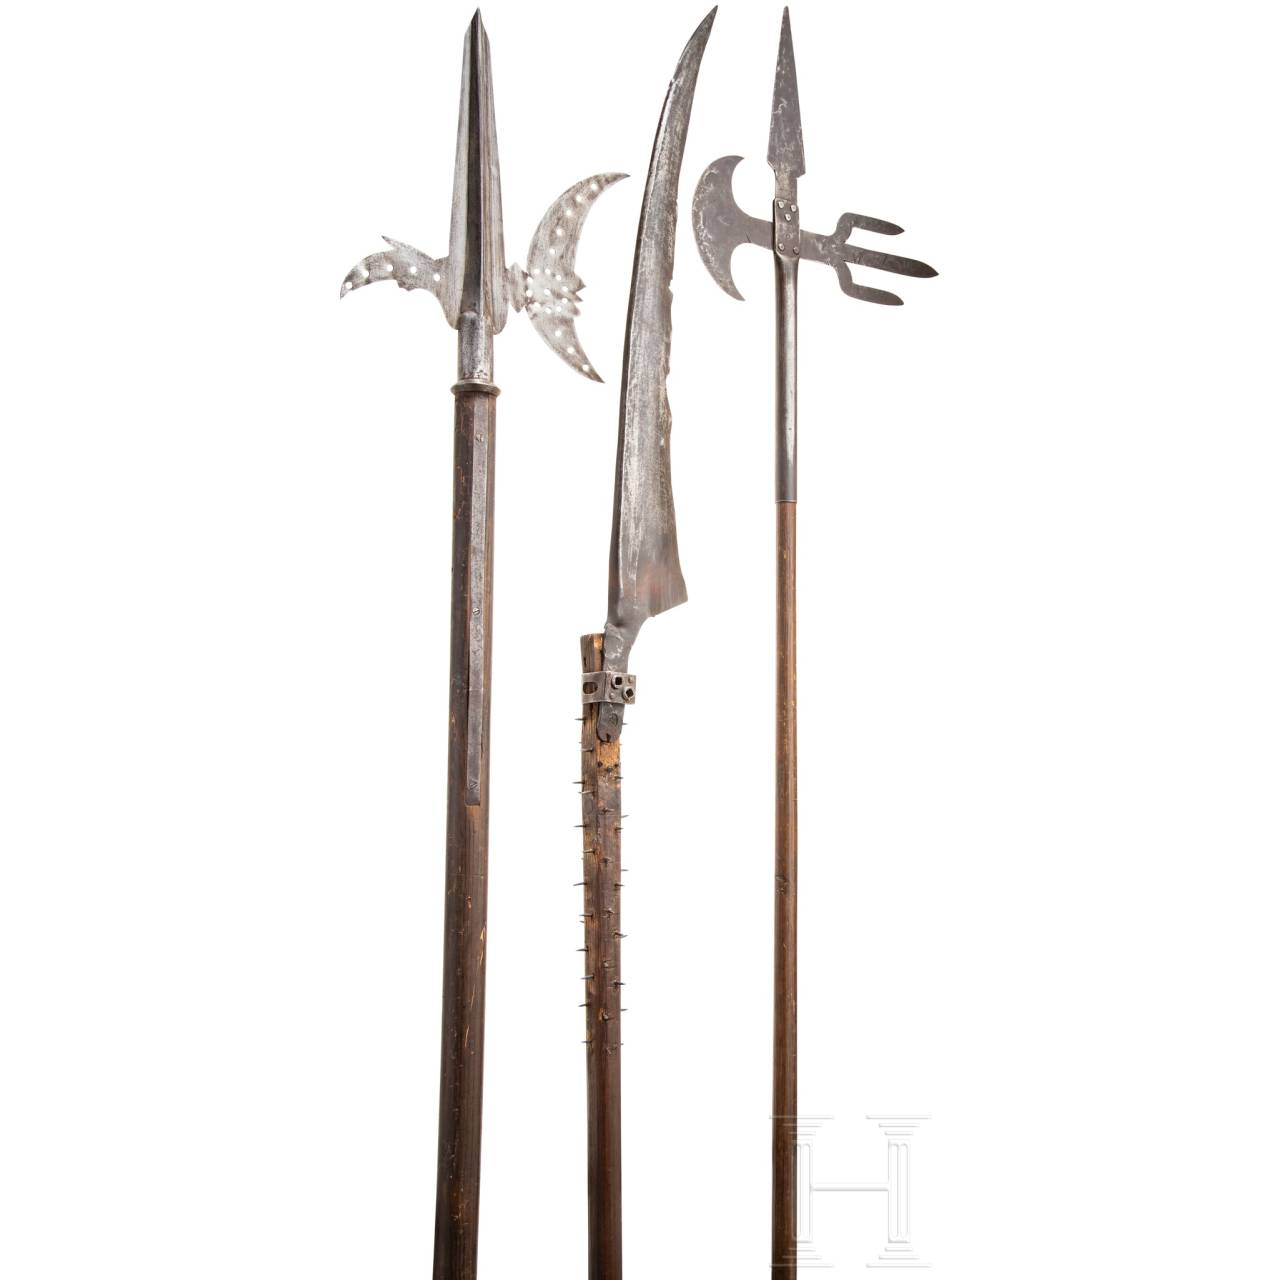 Three pole weapons, modern replicas in style 16th/17th century